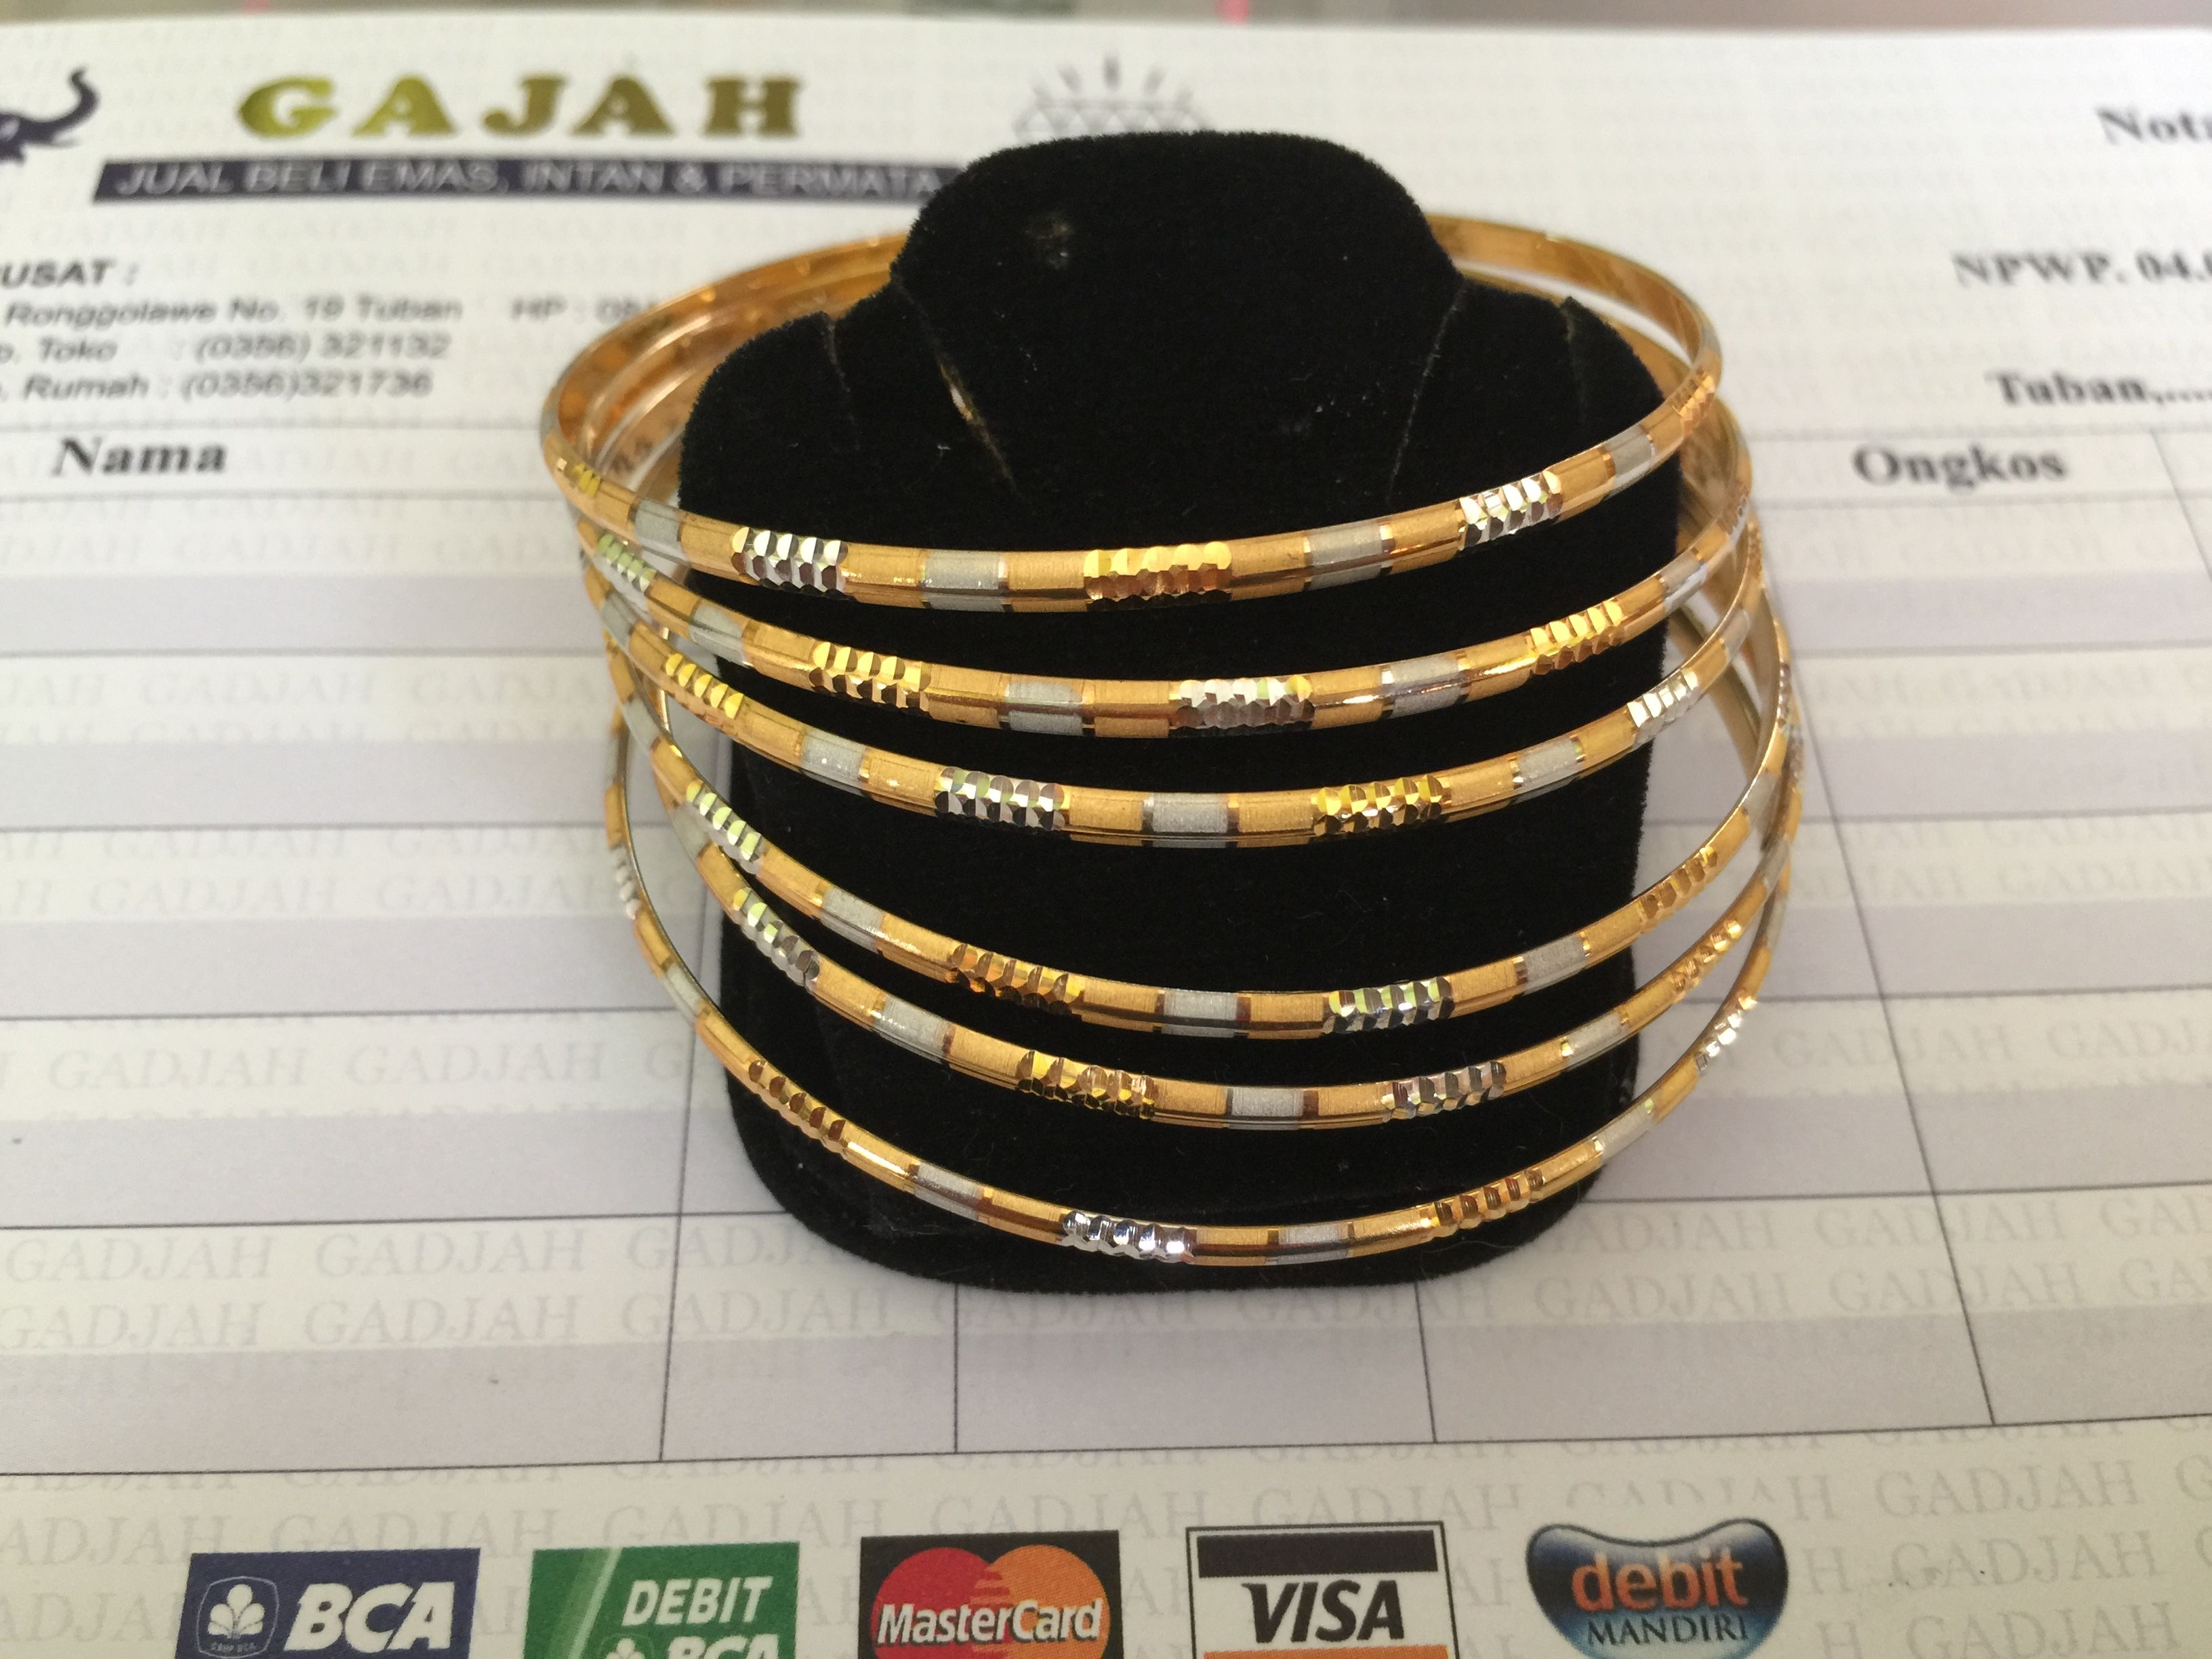 w product prodcat bar layer edited bracelets diamond categories fine adamas prod jewelry bangles